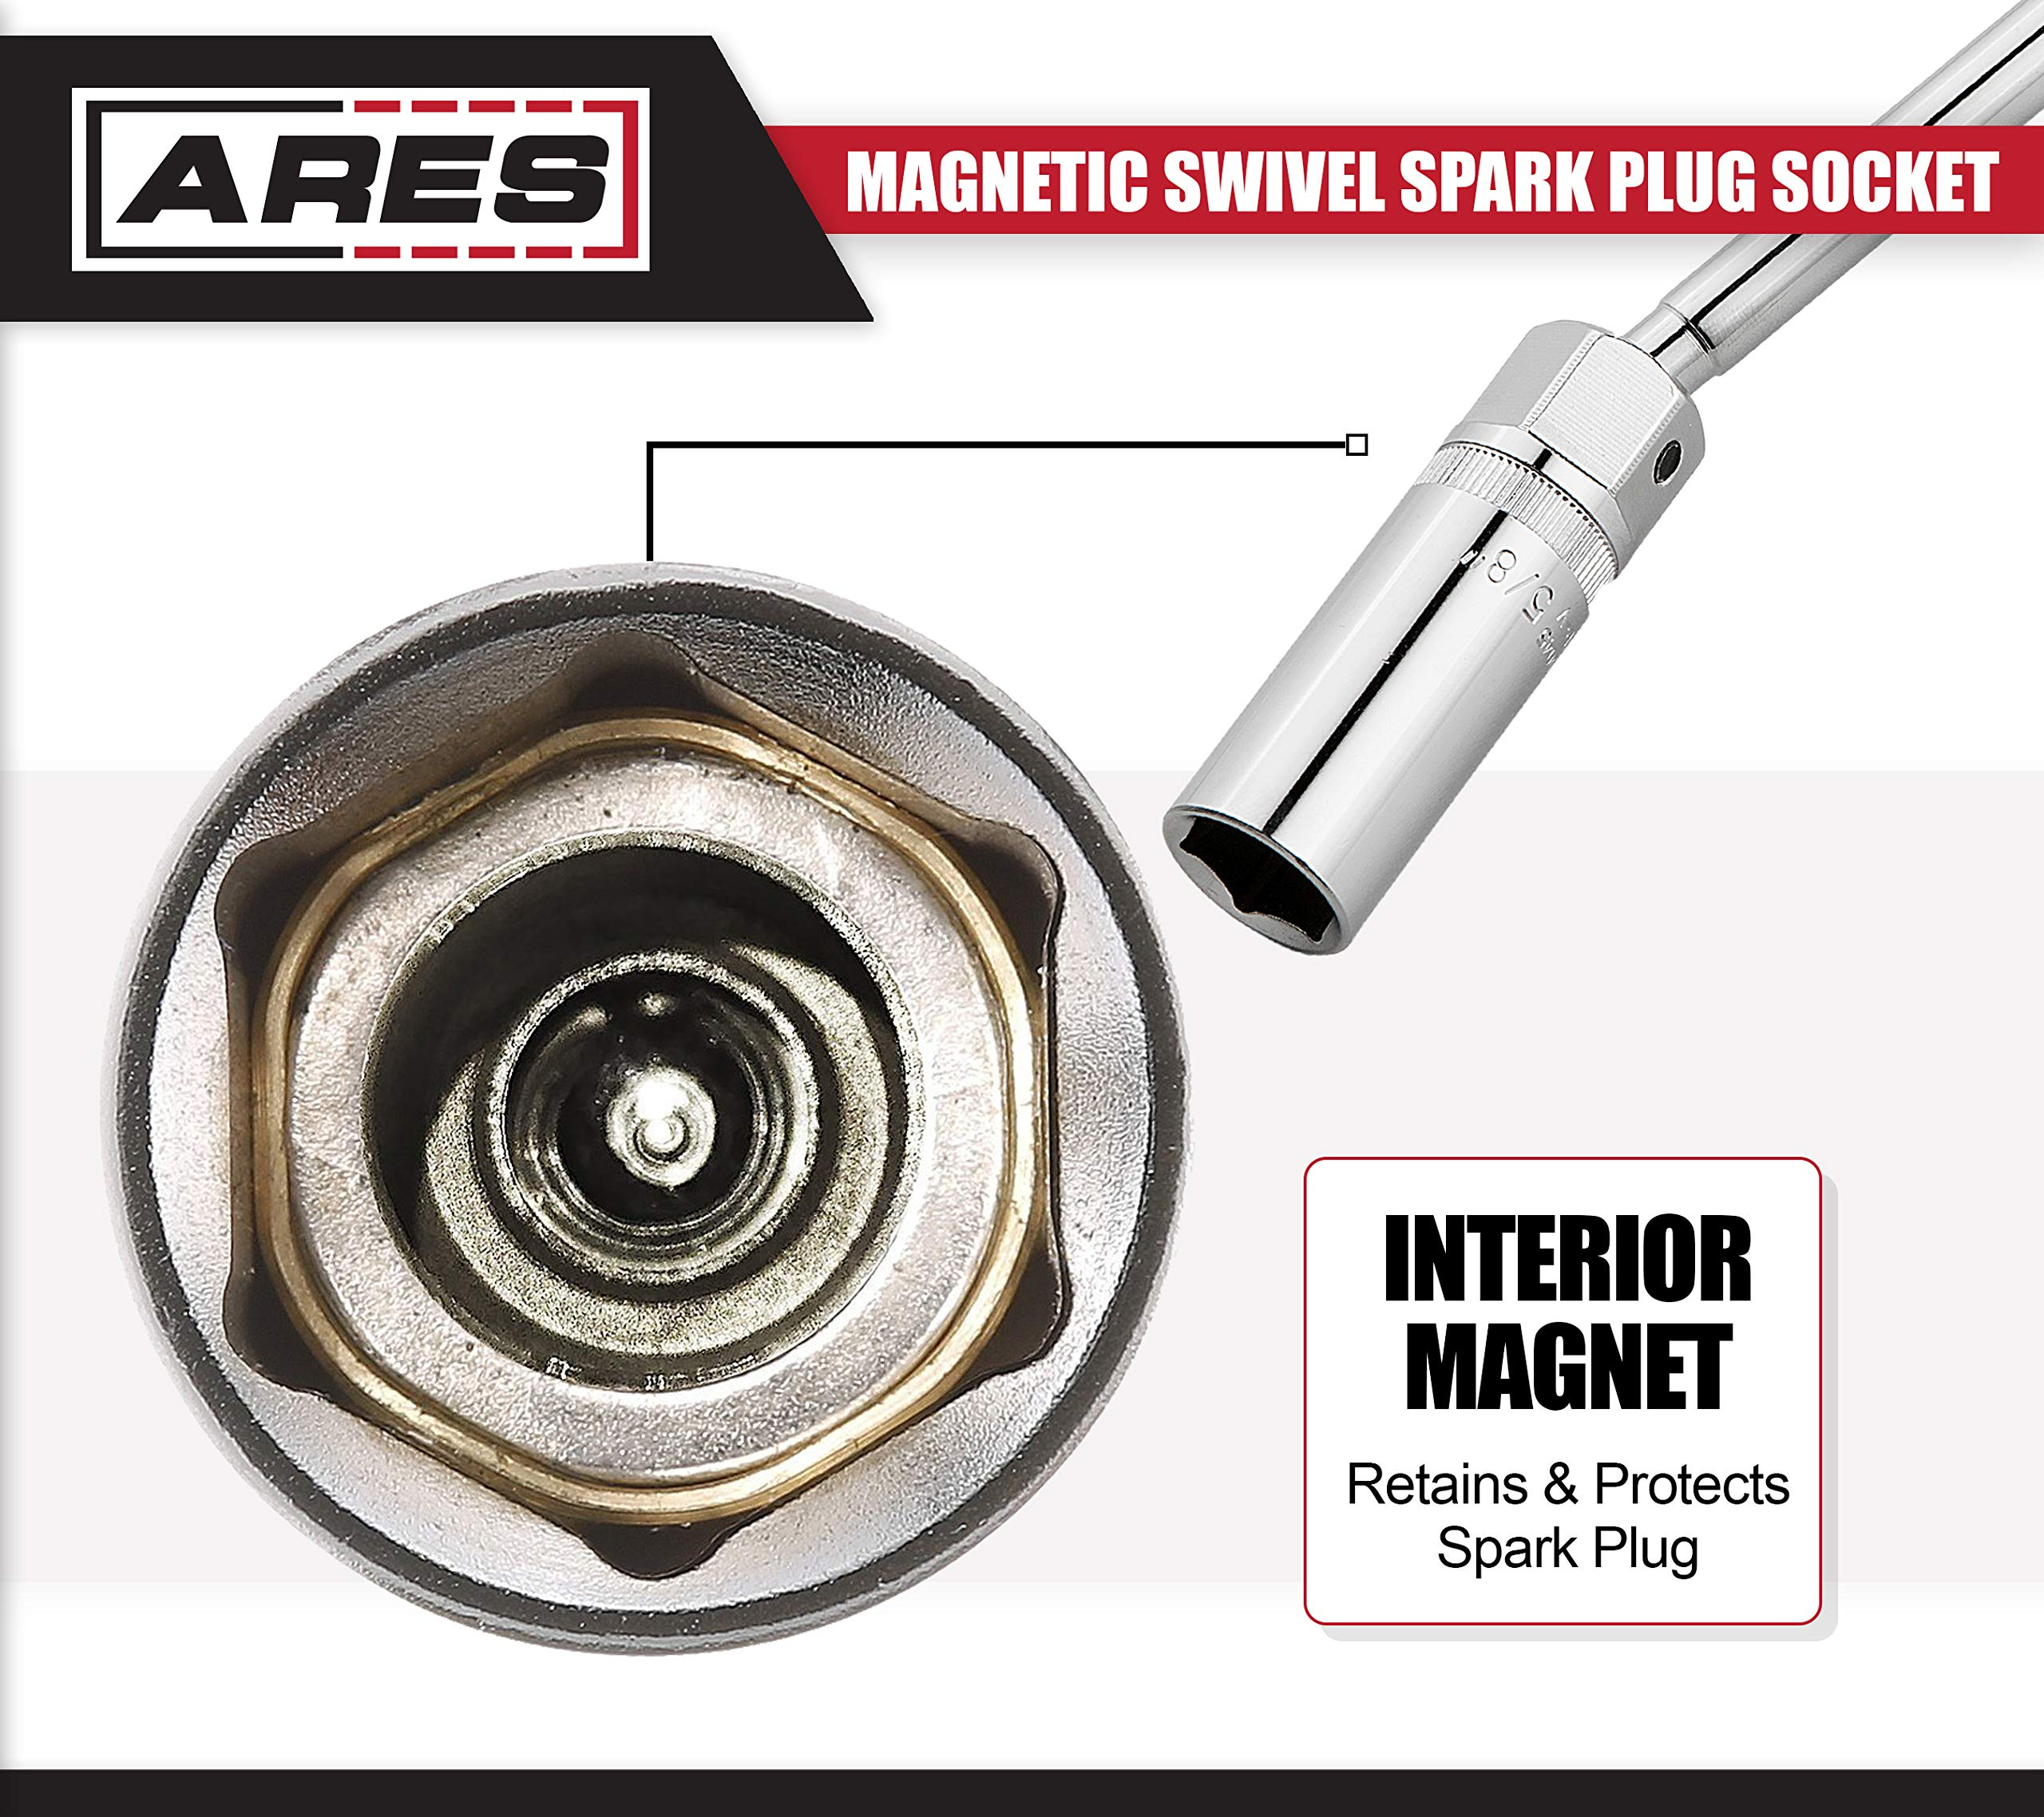 ARES 70045 | 3/8-inch Drive by 5/8-inch Magnetic Swivel Spark Plug Socket | 10-inch Swivel Extension Permits Access to Most Confined Areas by ARES (Image #4)